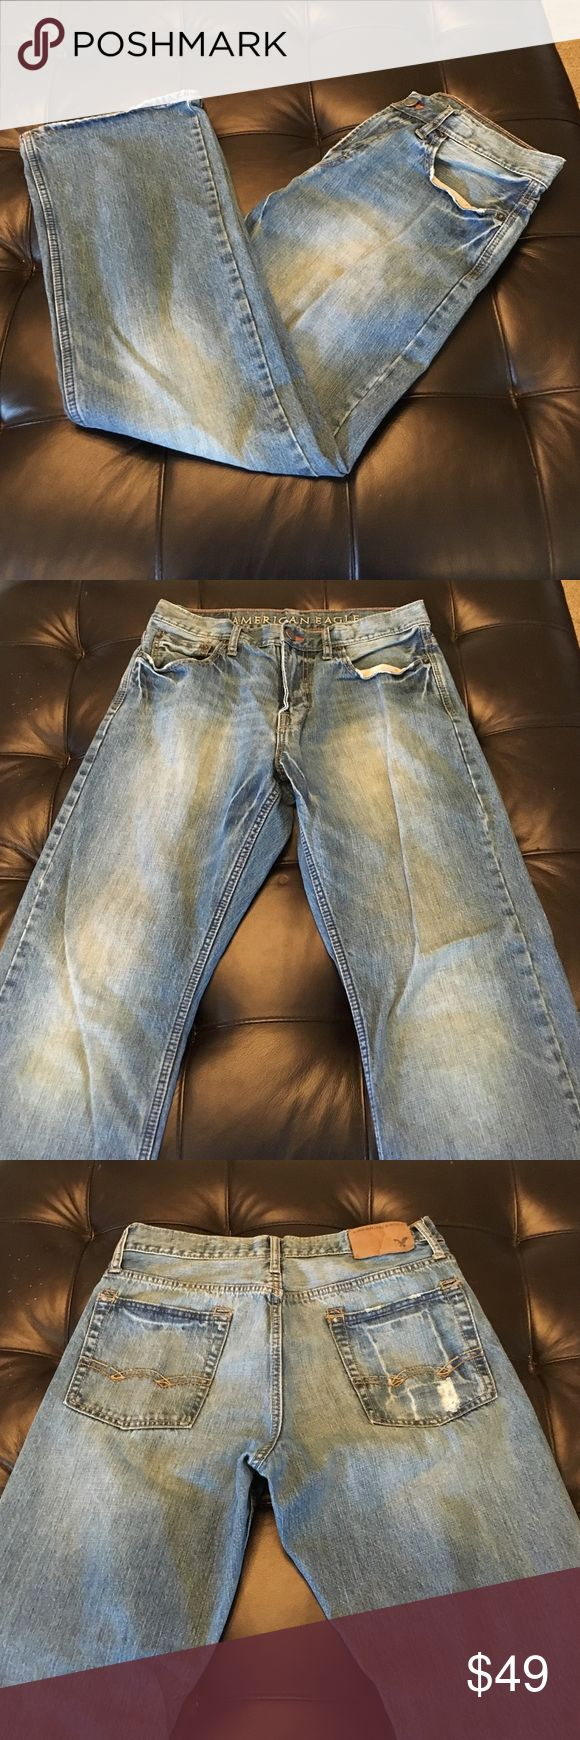 🍃SALE🍃 American Eagle Men's Bootcut Jeans They are a size 32/32 and have been worn a few times. They are men's jeans. American Eagle Outfitters Jeans Bootcut